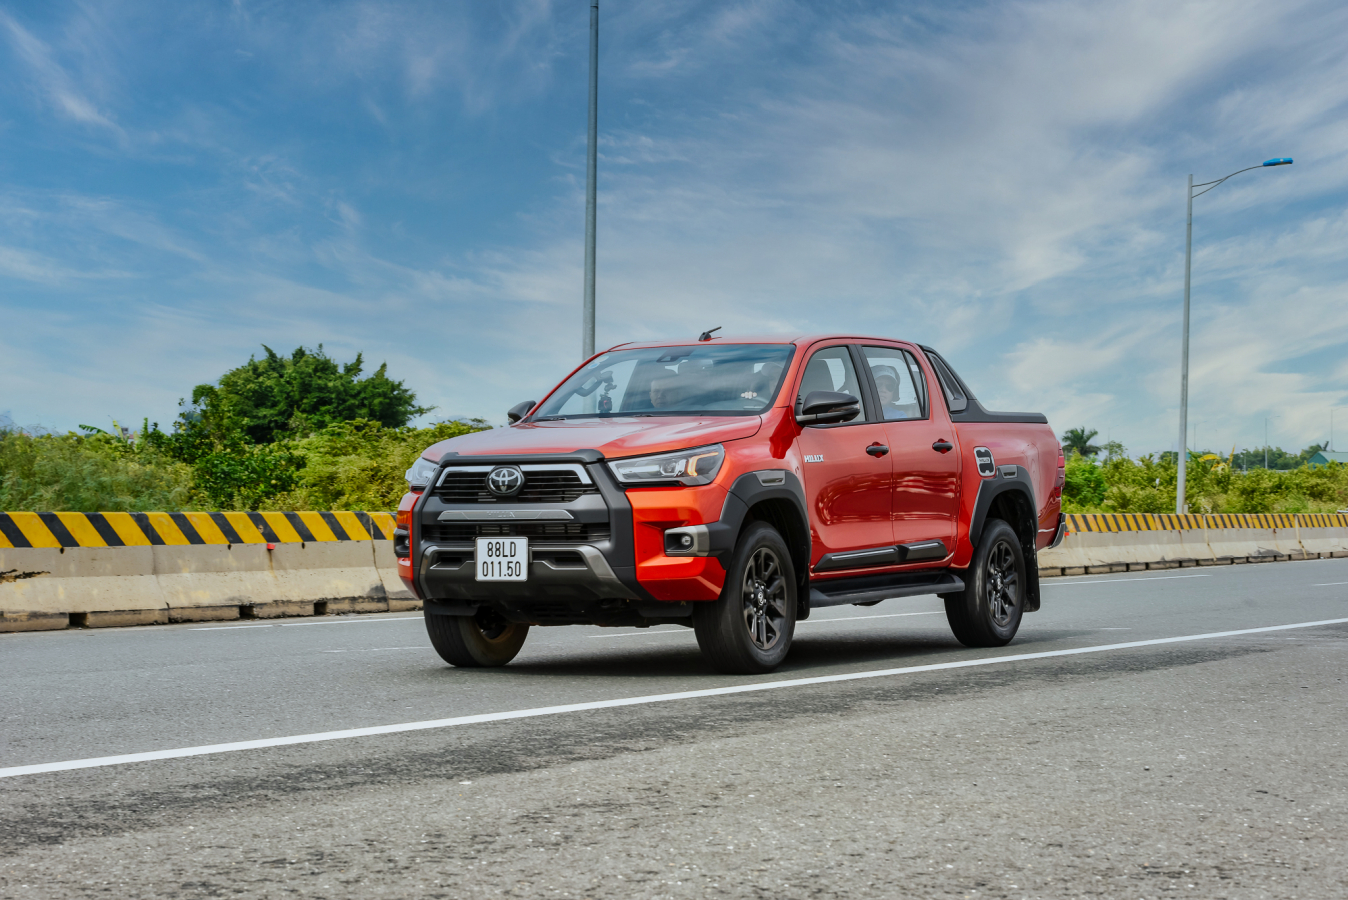 dam-chat-song-cung-hanh-trinh-toyota-suv-2020